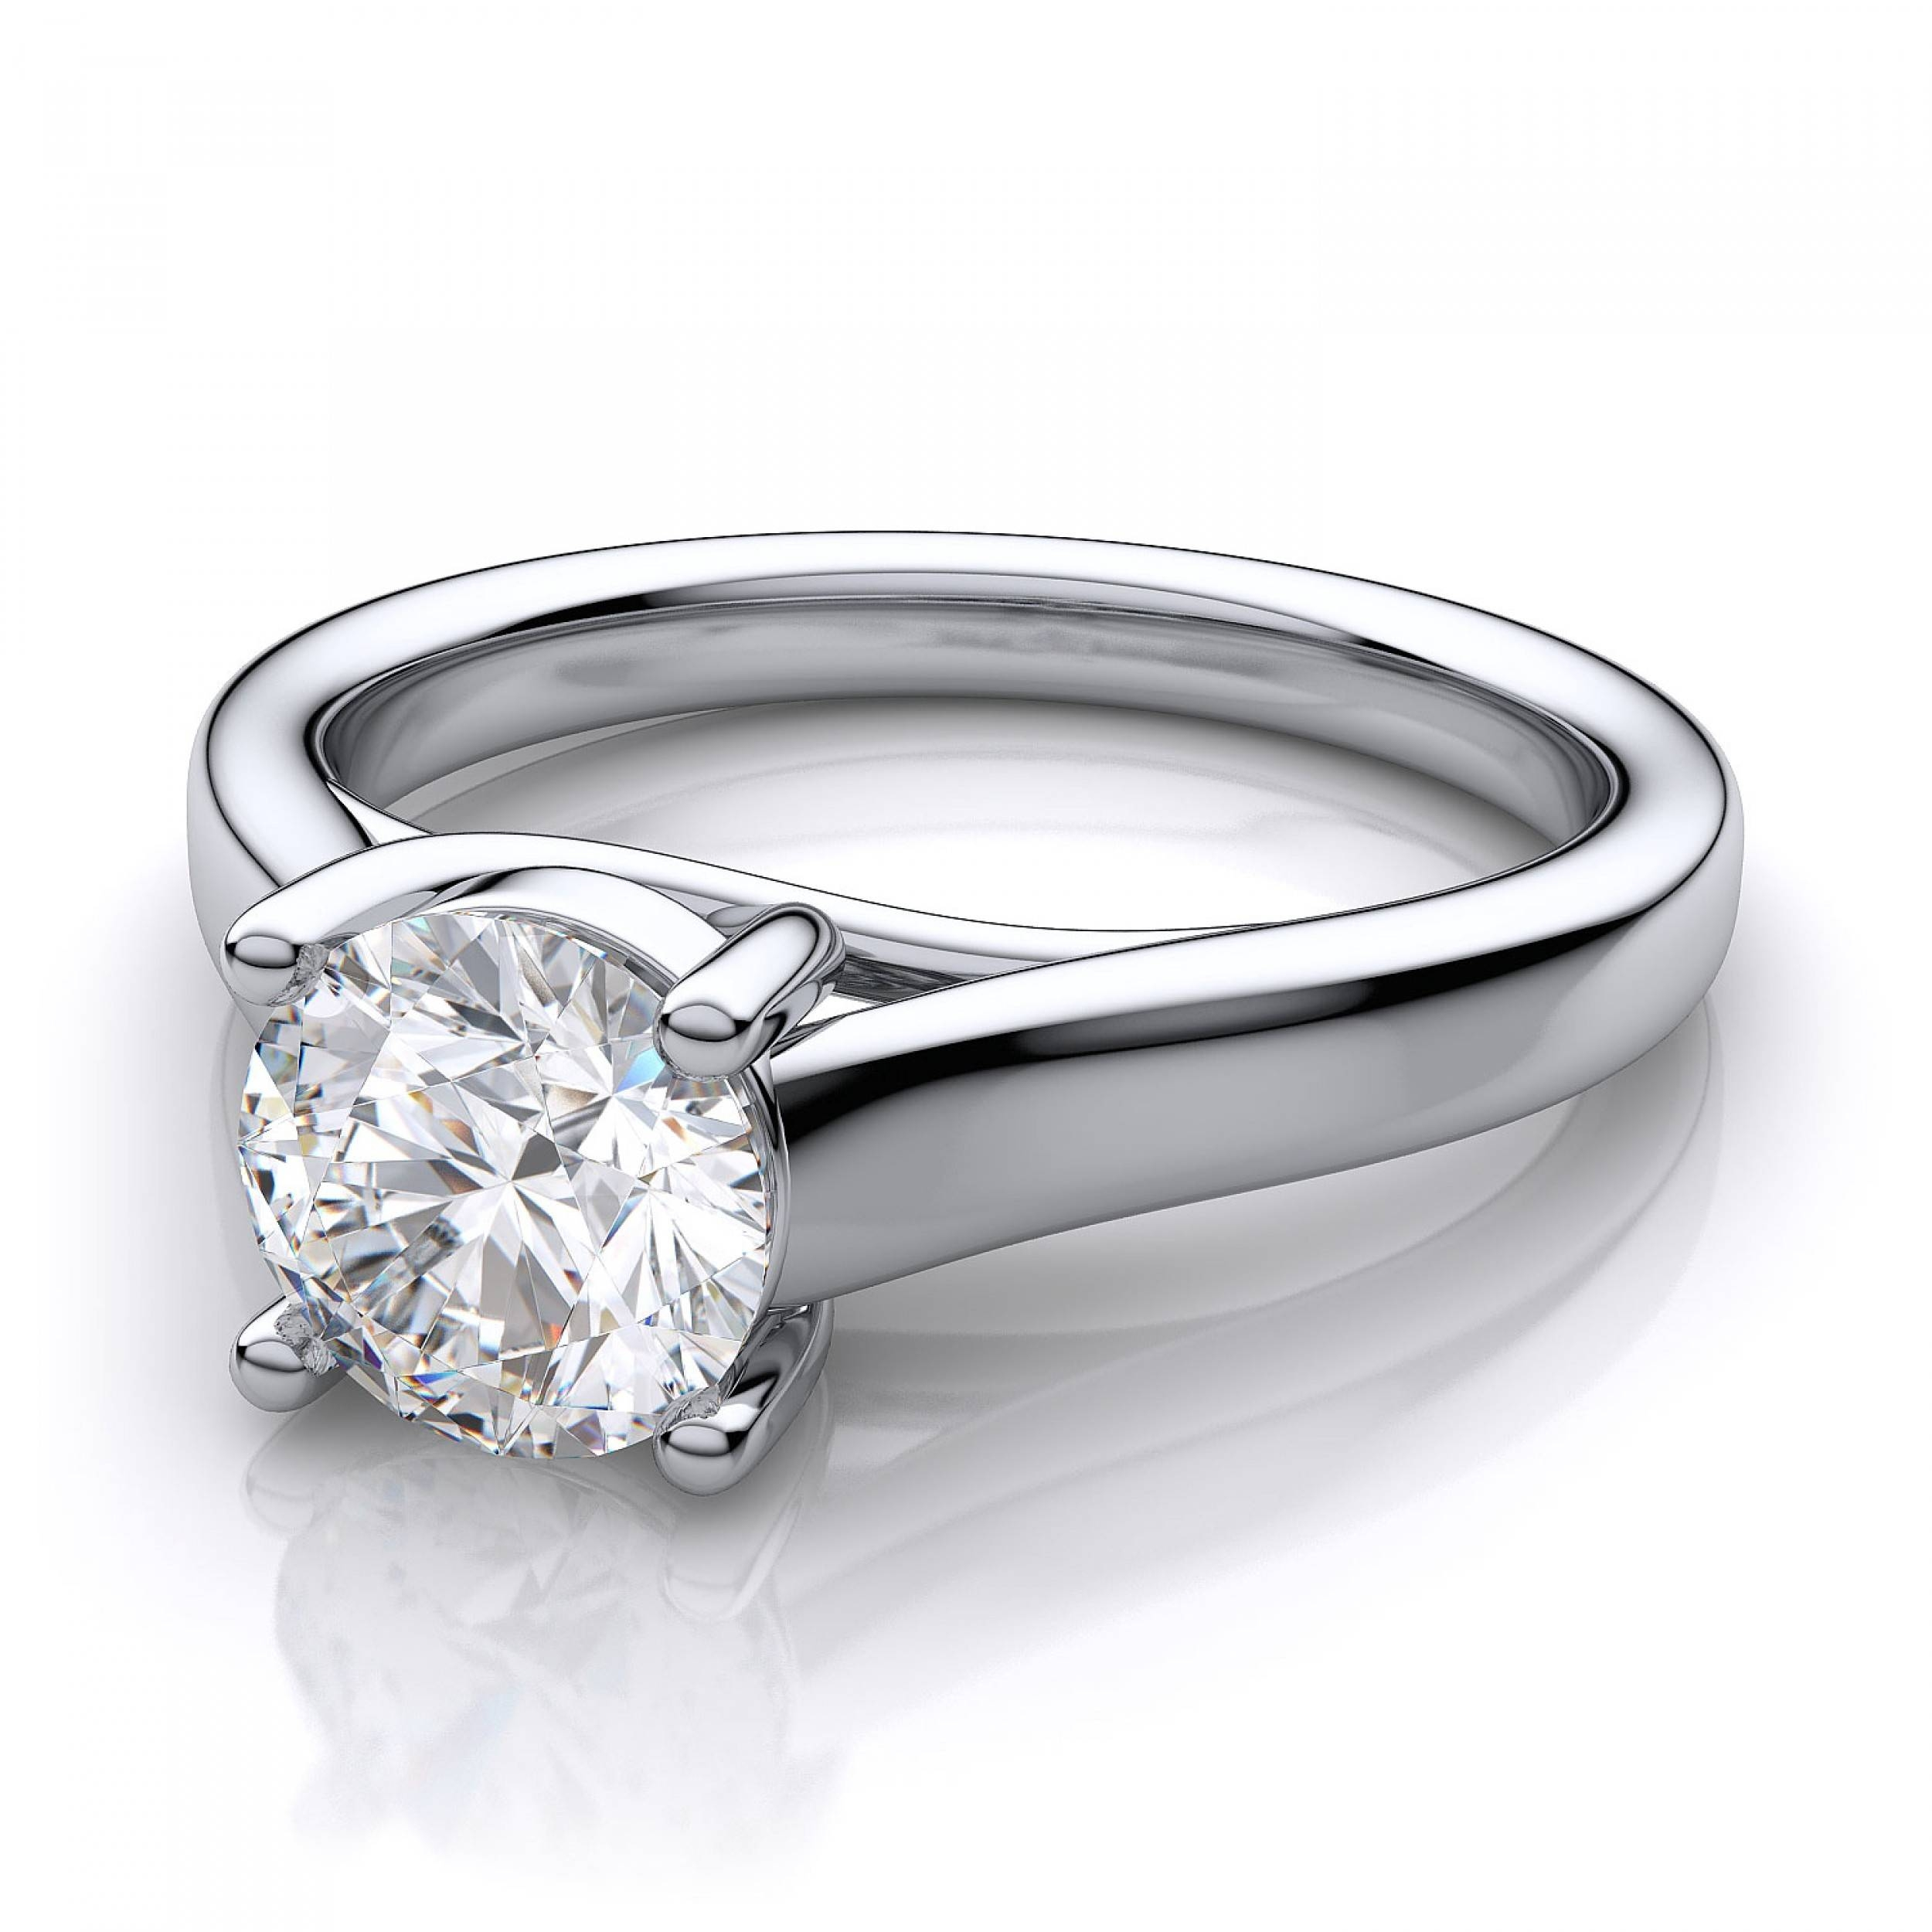 Solitaire Engagement Ring – 14k White Gold With Regard To Diamond Solitaire Wedding Rings (View 9 of 15)